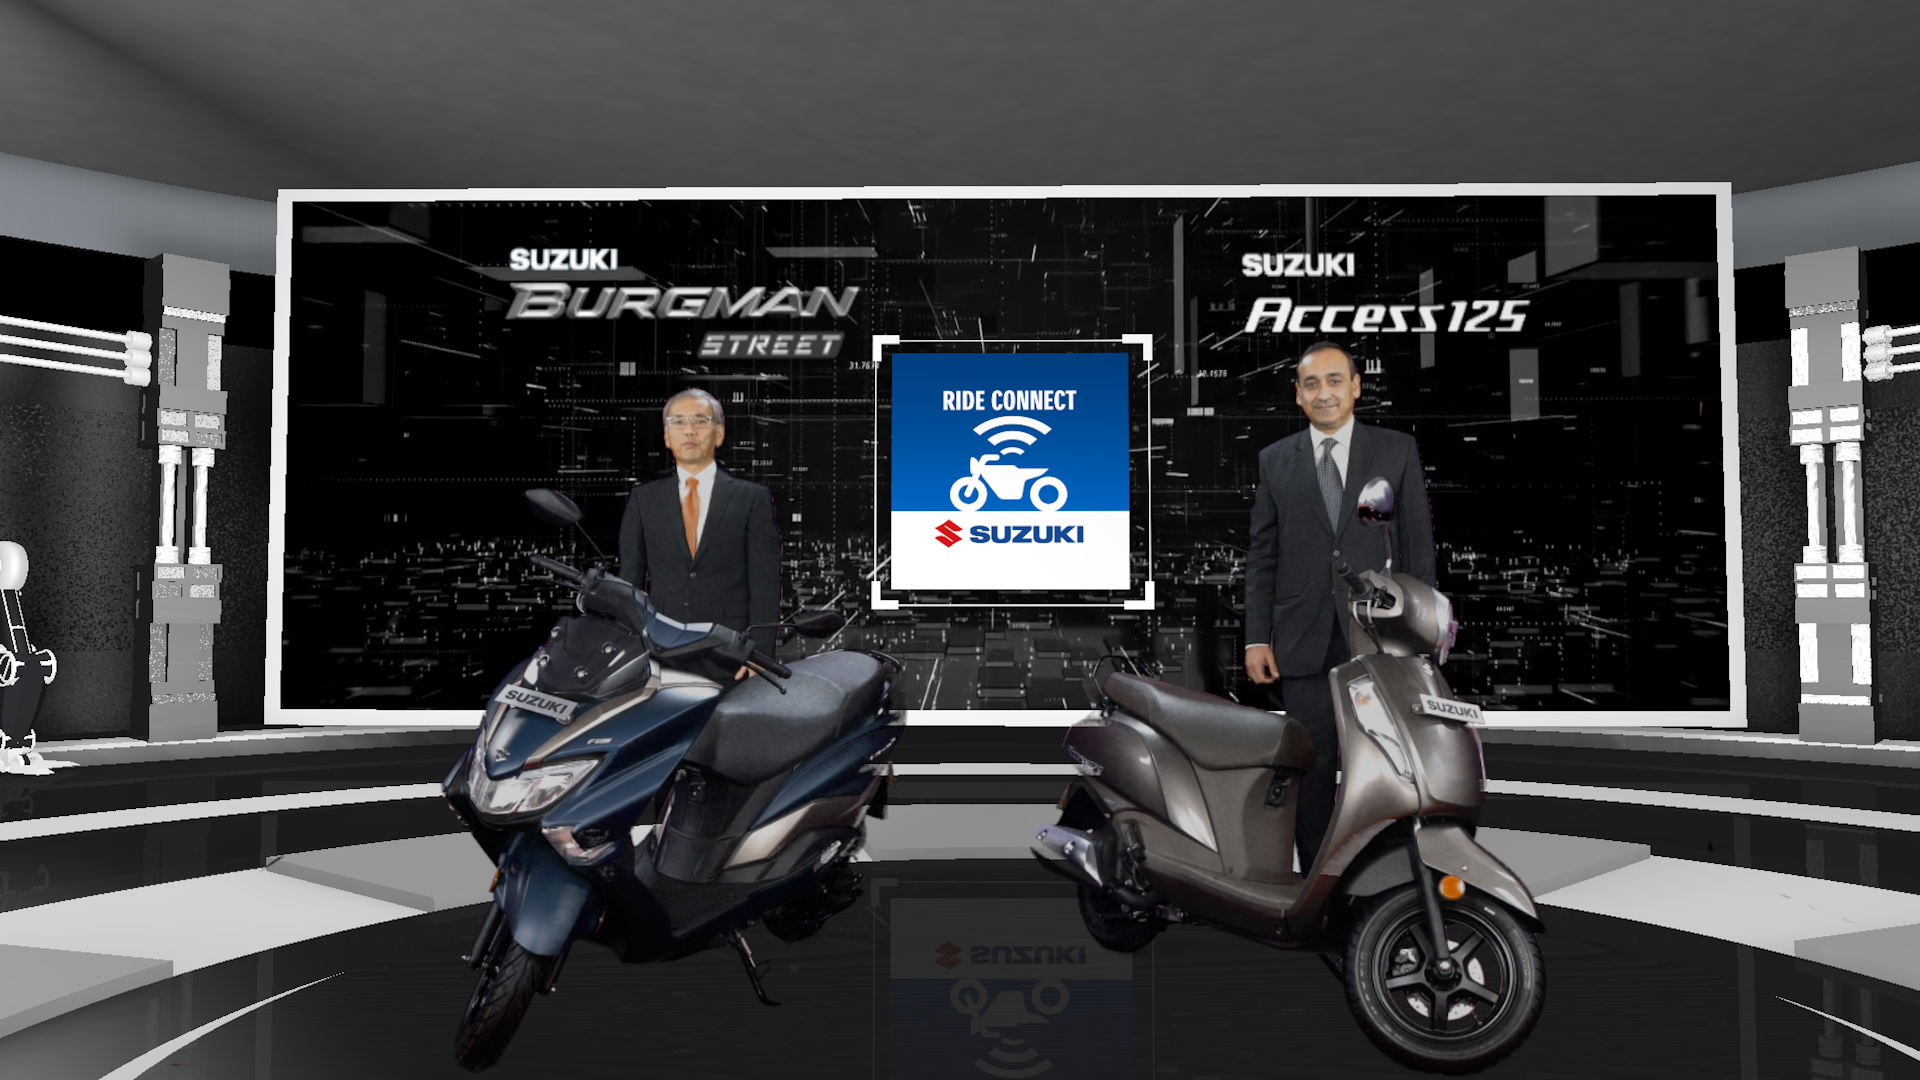 Suzuki Access 125 & Burgman Street launched with Bluetooth